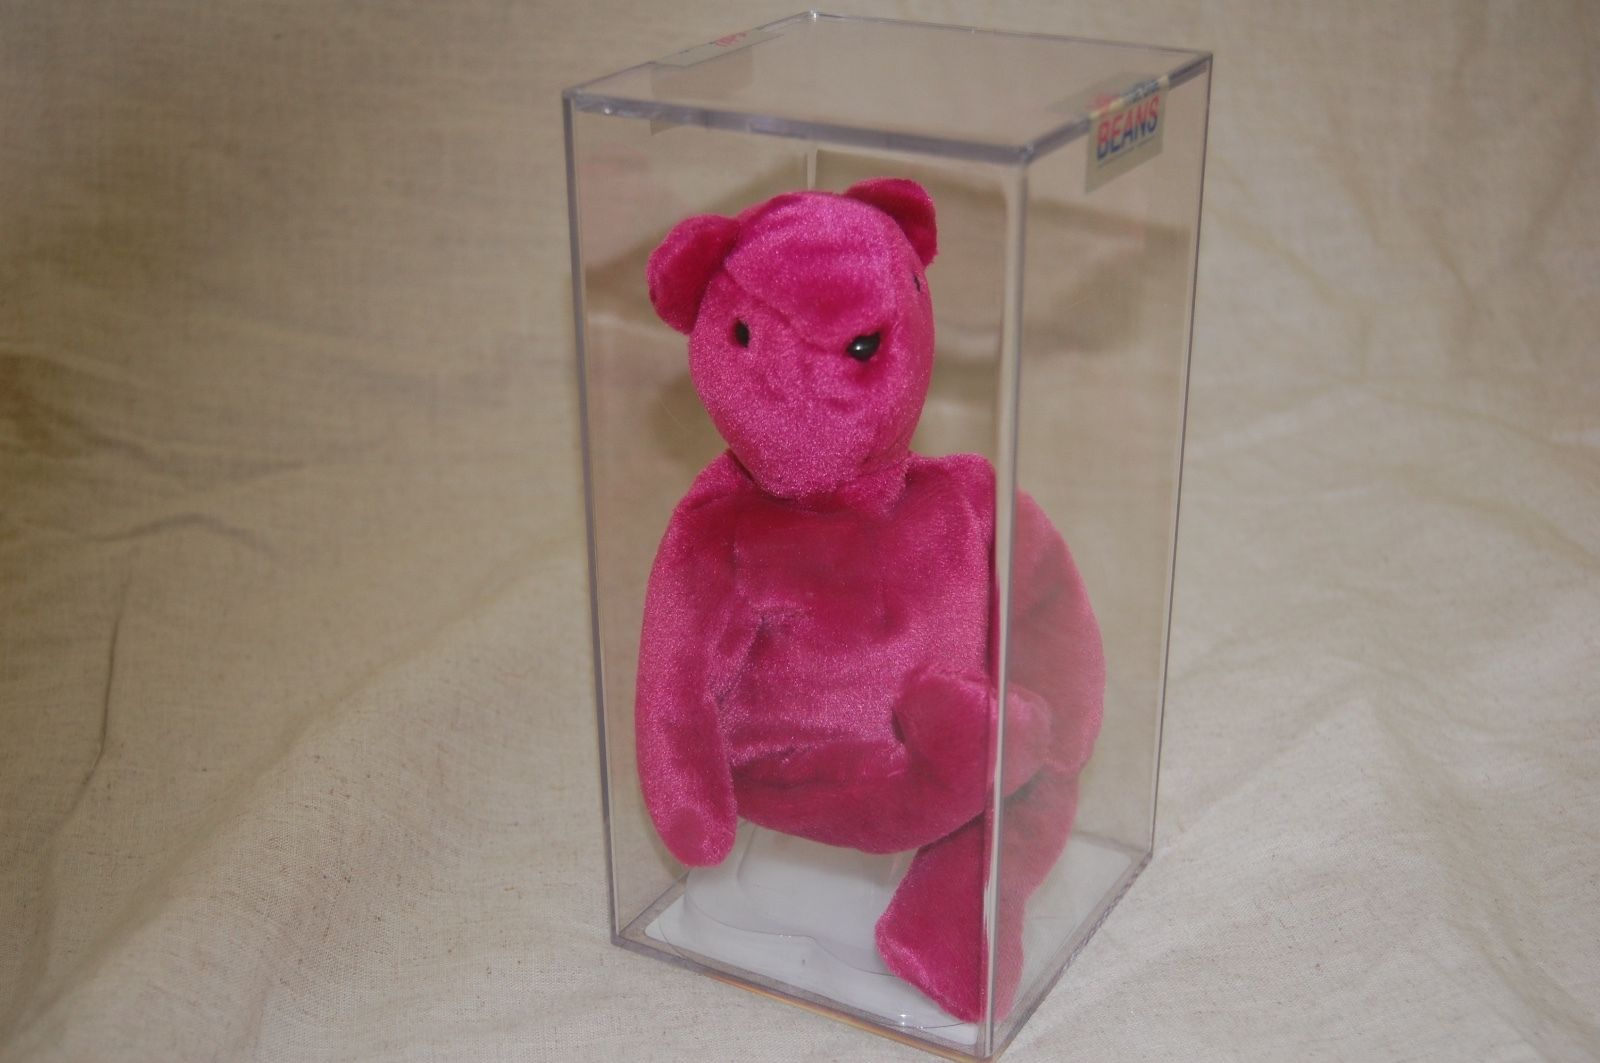 fe462ec96a0 Teddy Old Face Magenta Authenticated Beanie Babies Price Guide ...